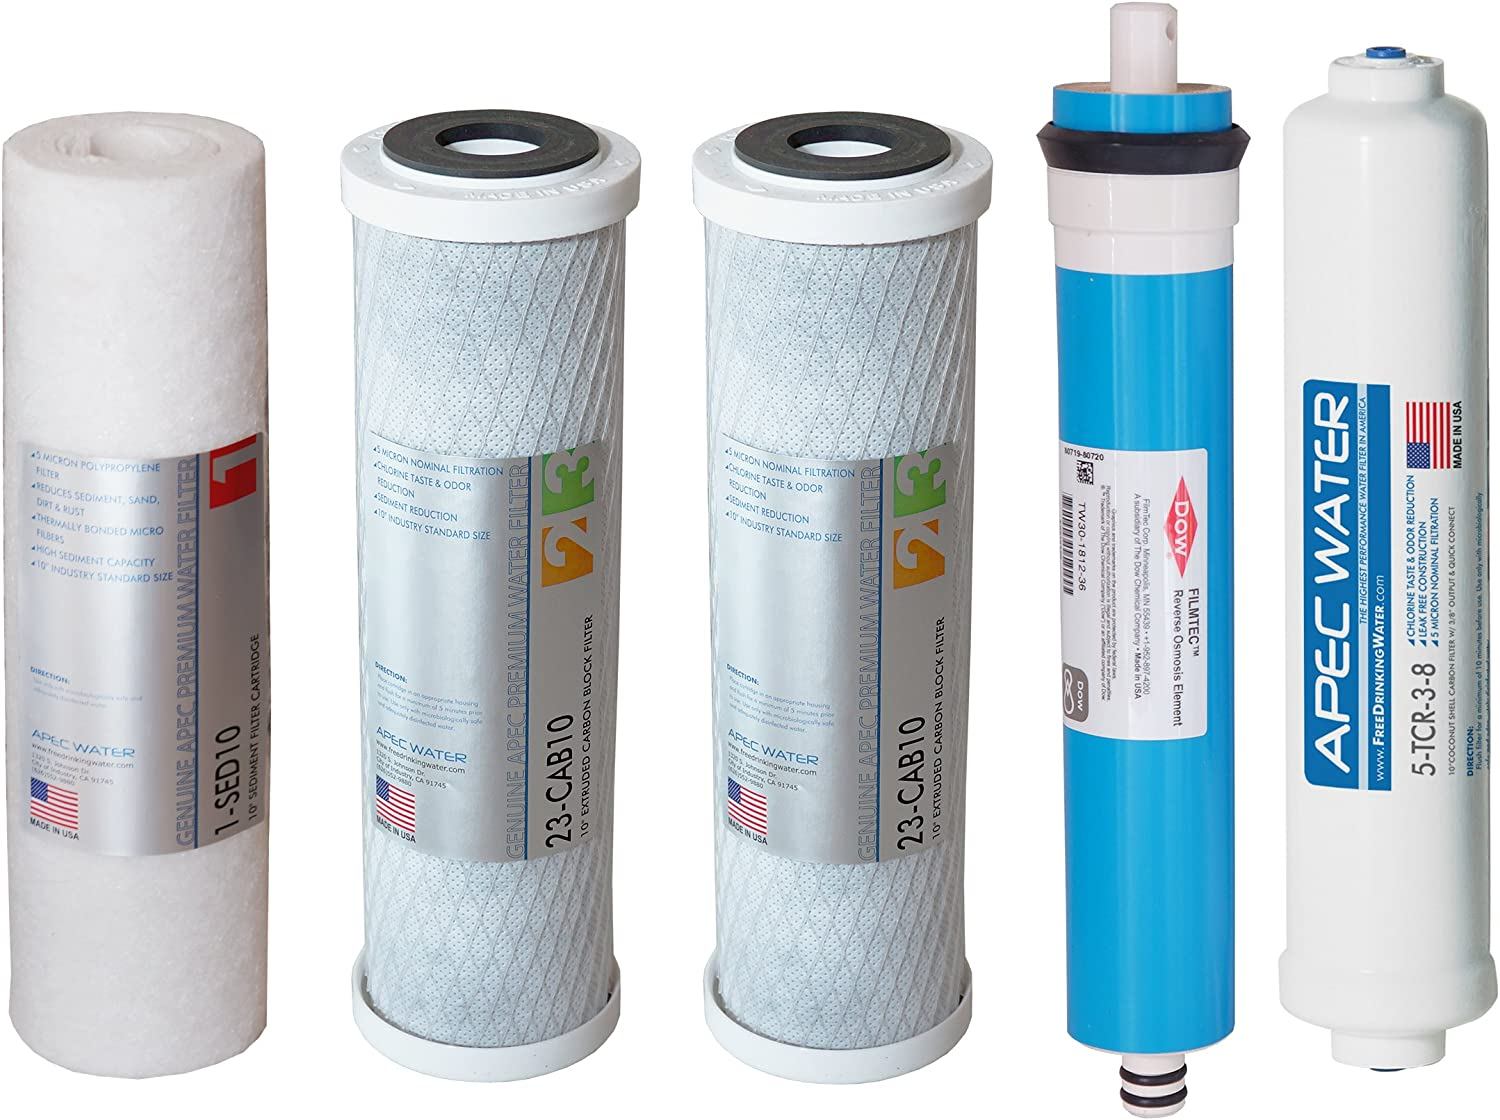 """APEC FILTER-MAX45-38 US Made 50 GPD Complete Replacement Filter Set For ULTIMATE Series Reverse Osmosis Water Filter System with 3/8"""" Quick Dispense (For Upgraded 3/8"""" Output System)"""